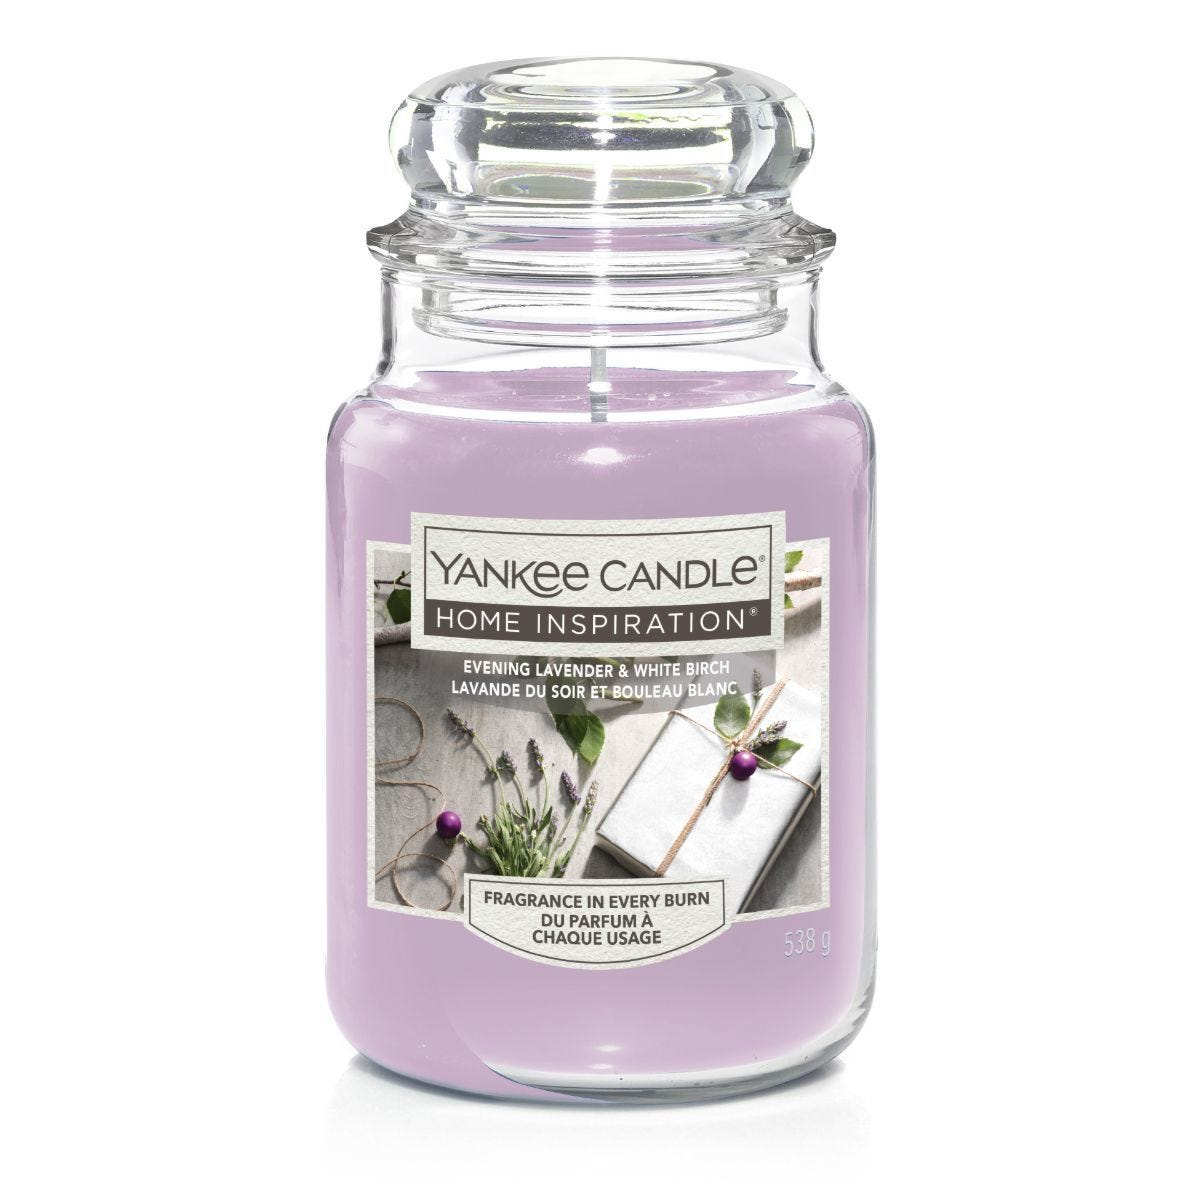 Yankee Candle Home Inspiration Large Jar Candle - Evening Lavender & White Birch